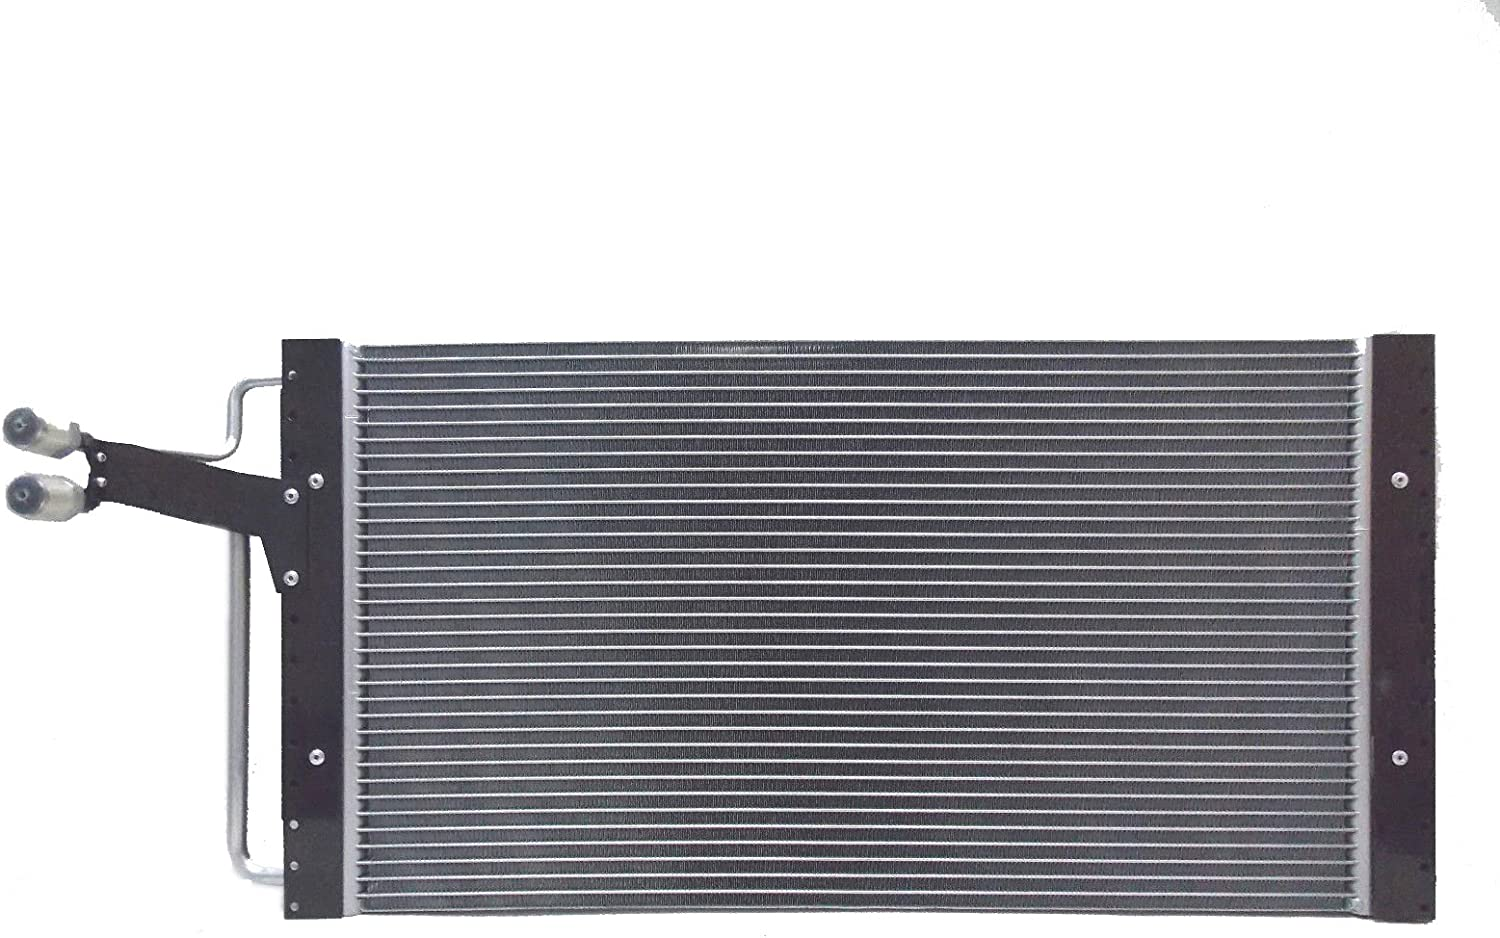 Fit 95-05 Chevy Blazer 4.3 Black Reusable/&Washable High Flow Drop In Air Filter